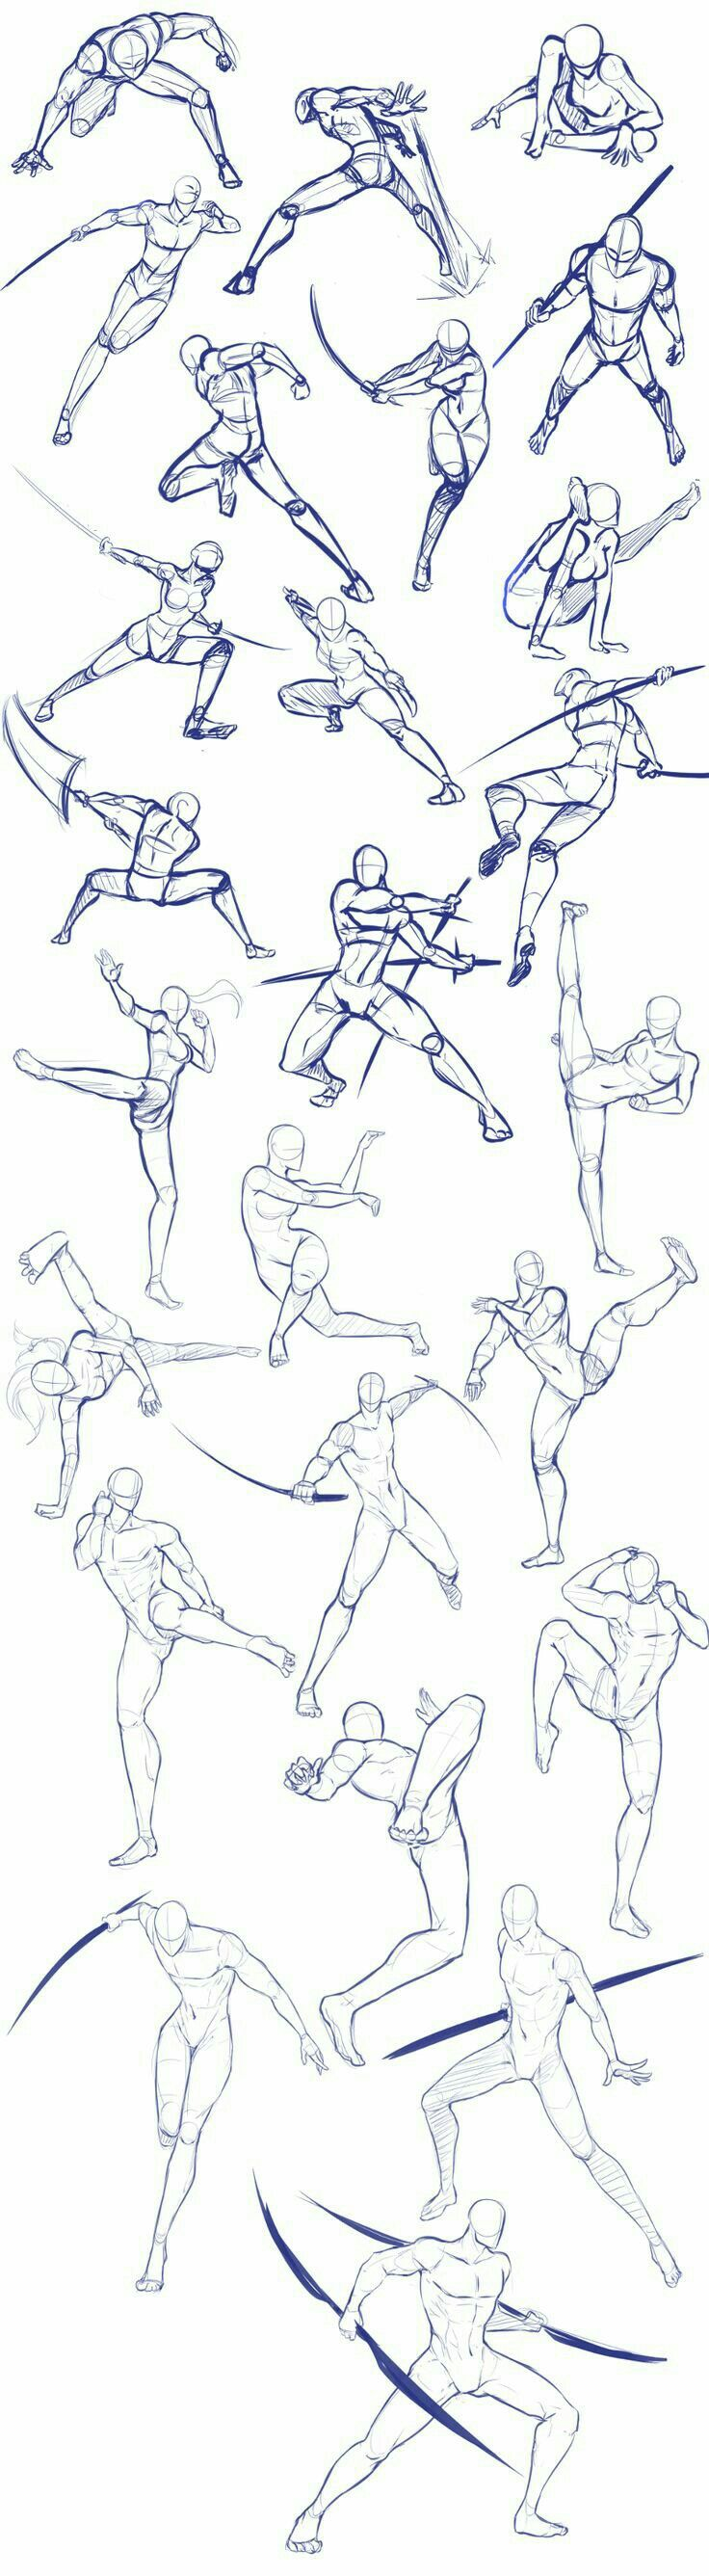 body positions weapons fighting swords how to draw manga anime